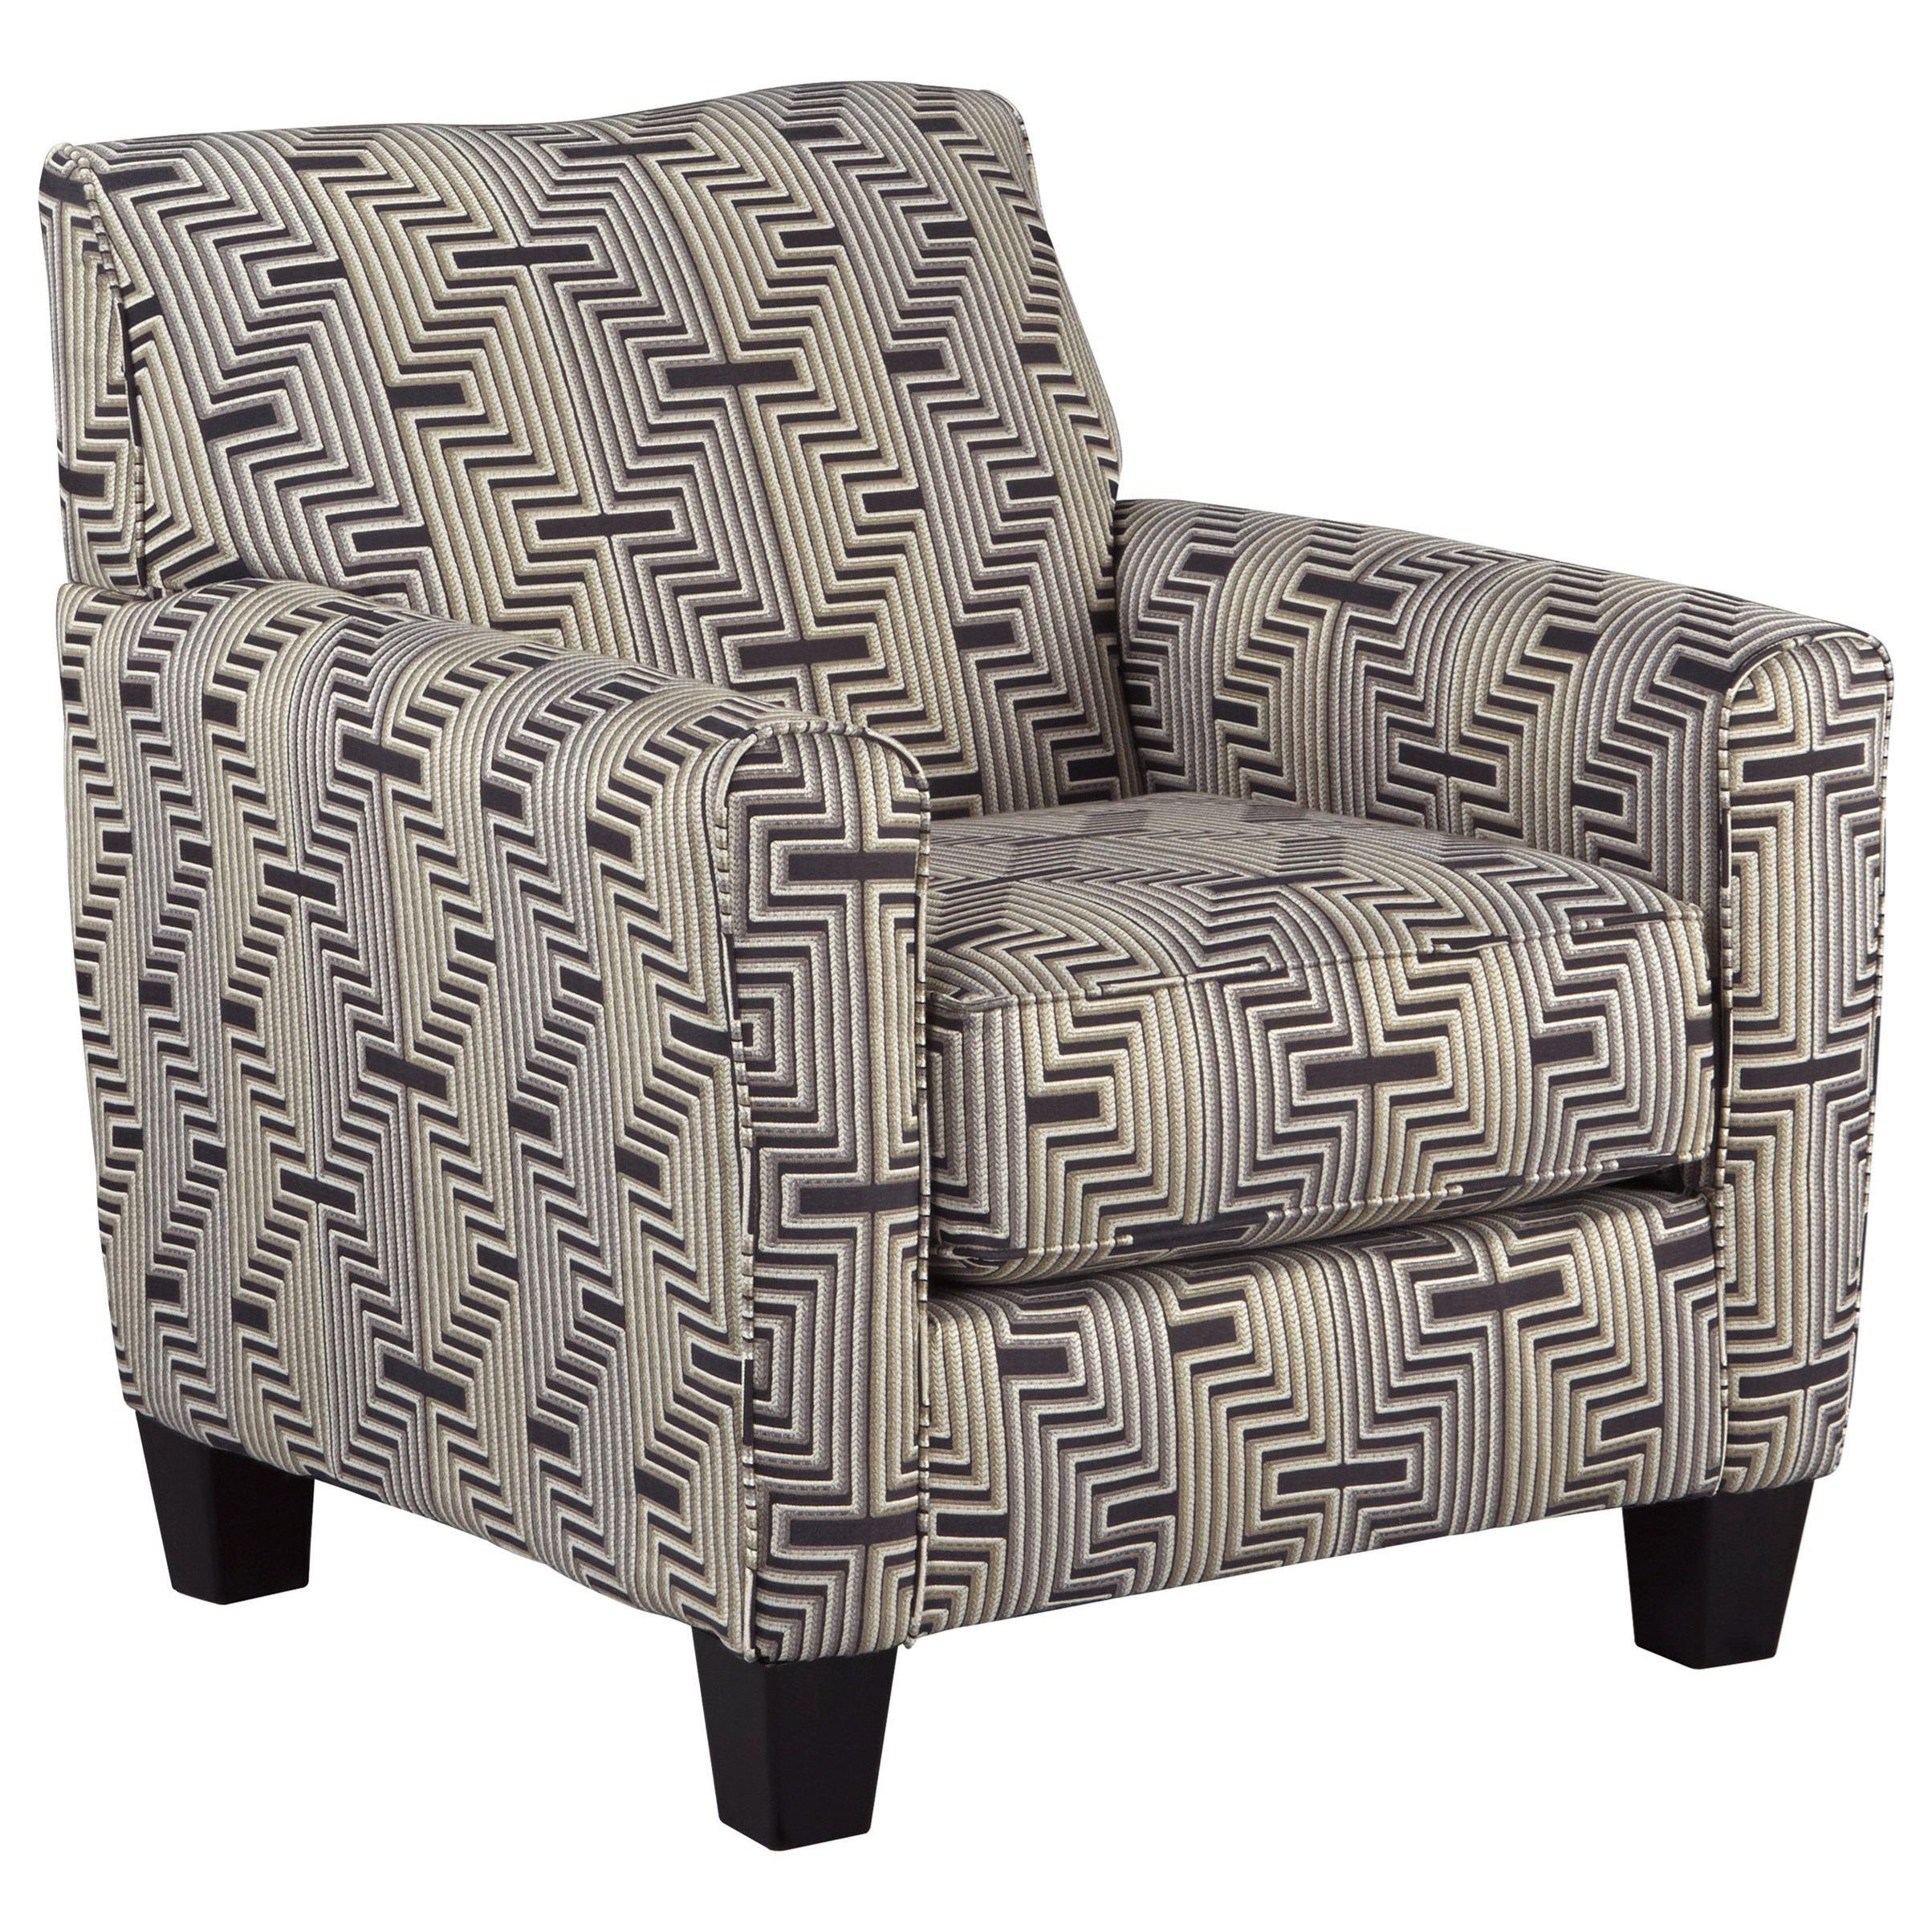 Torcello Accent Chair by Ashley Furniture at Lapeer Furniture & Mattress Center